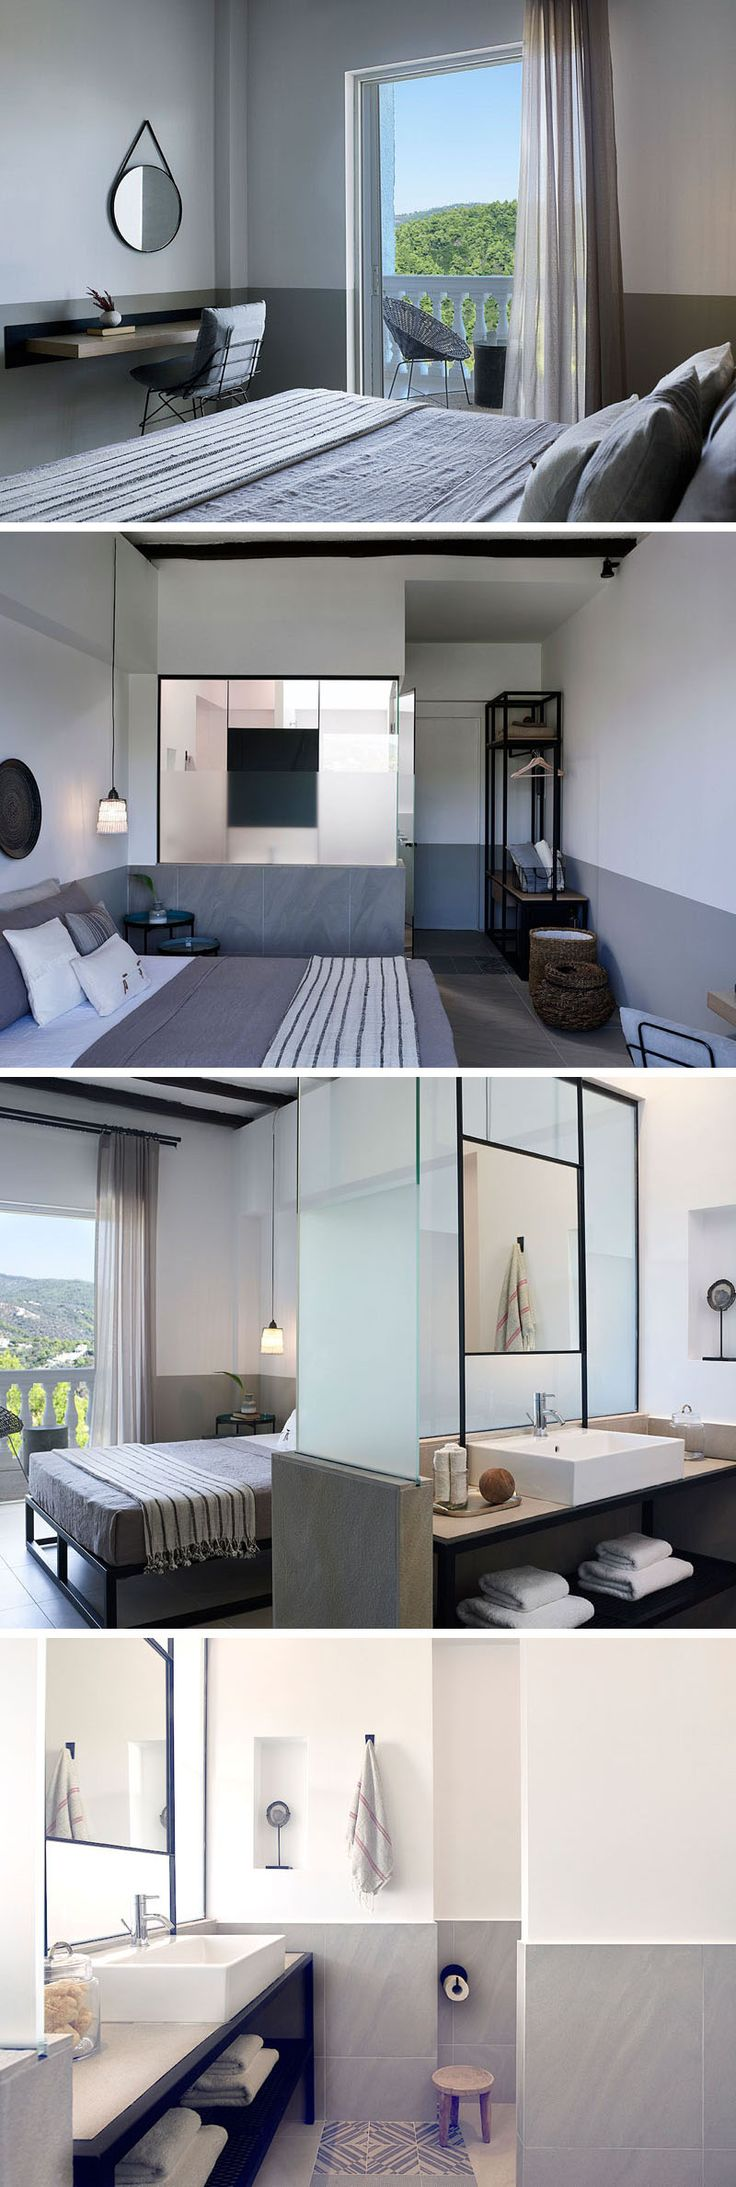 Best 25 Modern hotel room ideas on Pinterest Hotel room design